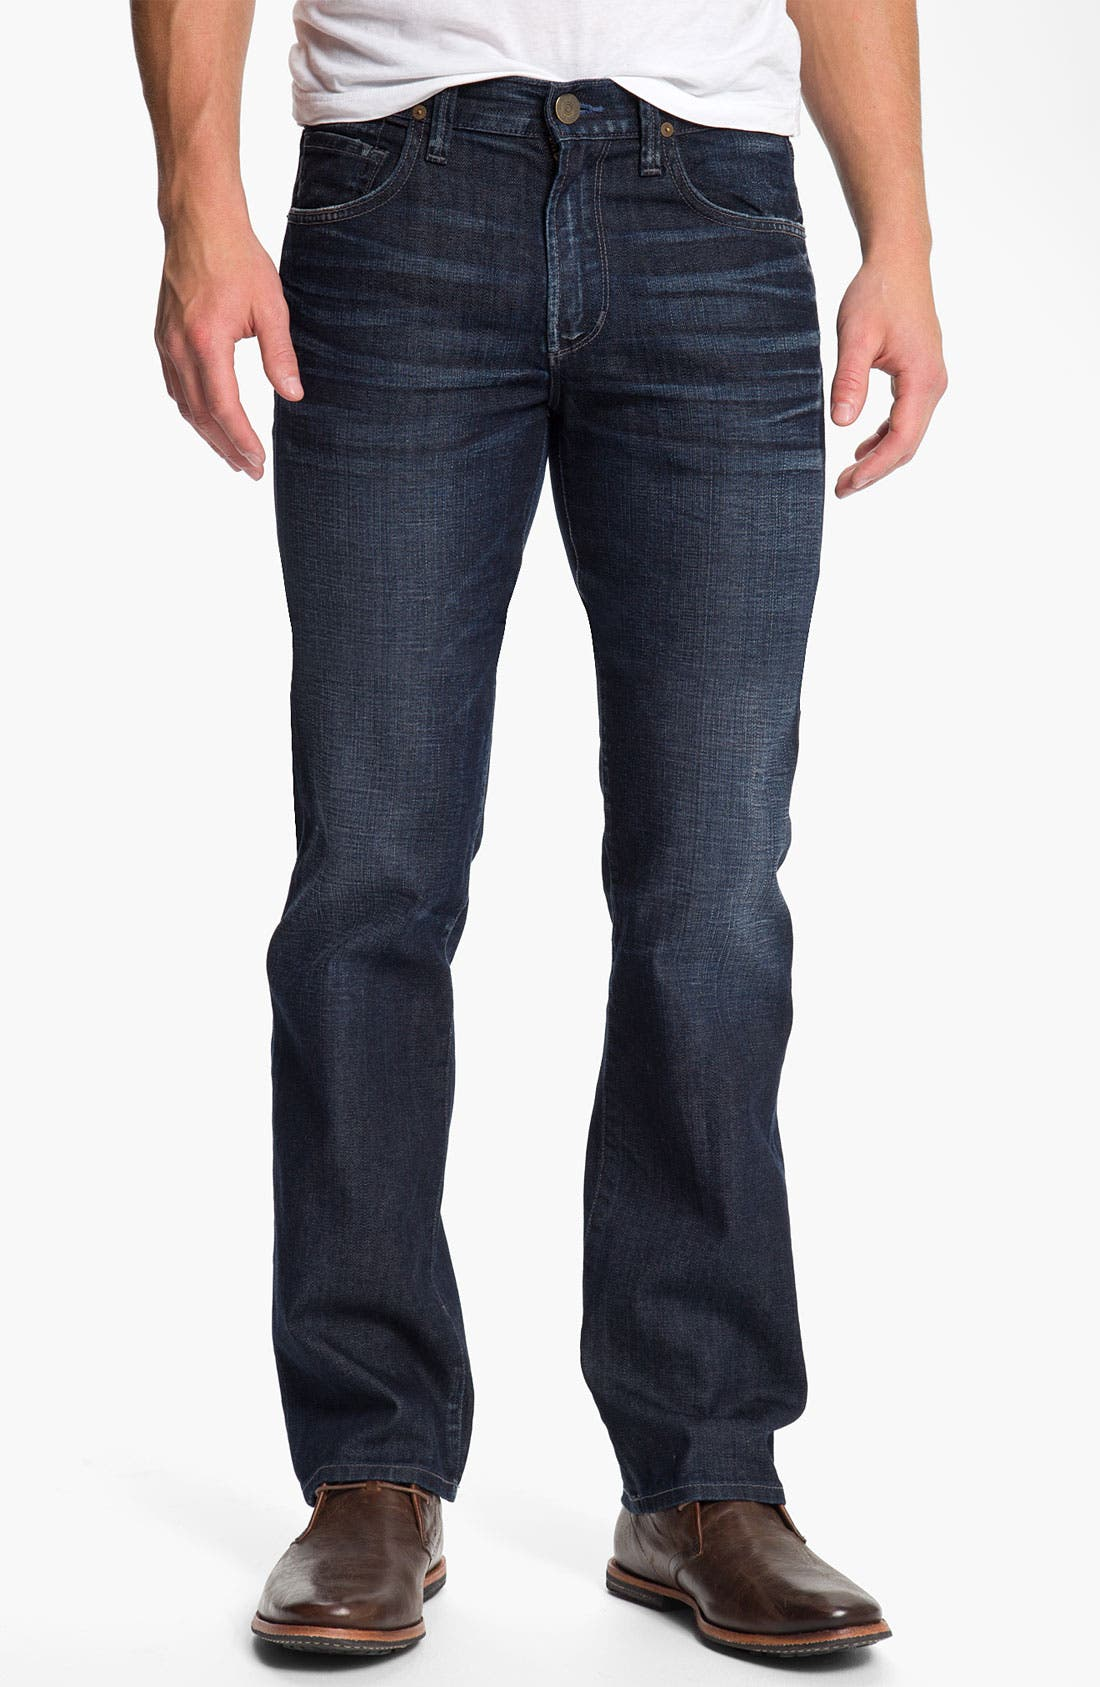 Alternate Image 1 Selected - Citizens of Humanity 'Sid' Straight Leg Jeans (Sherman)